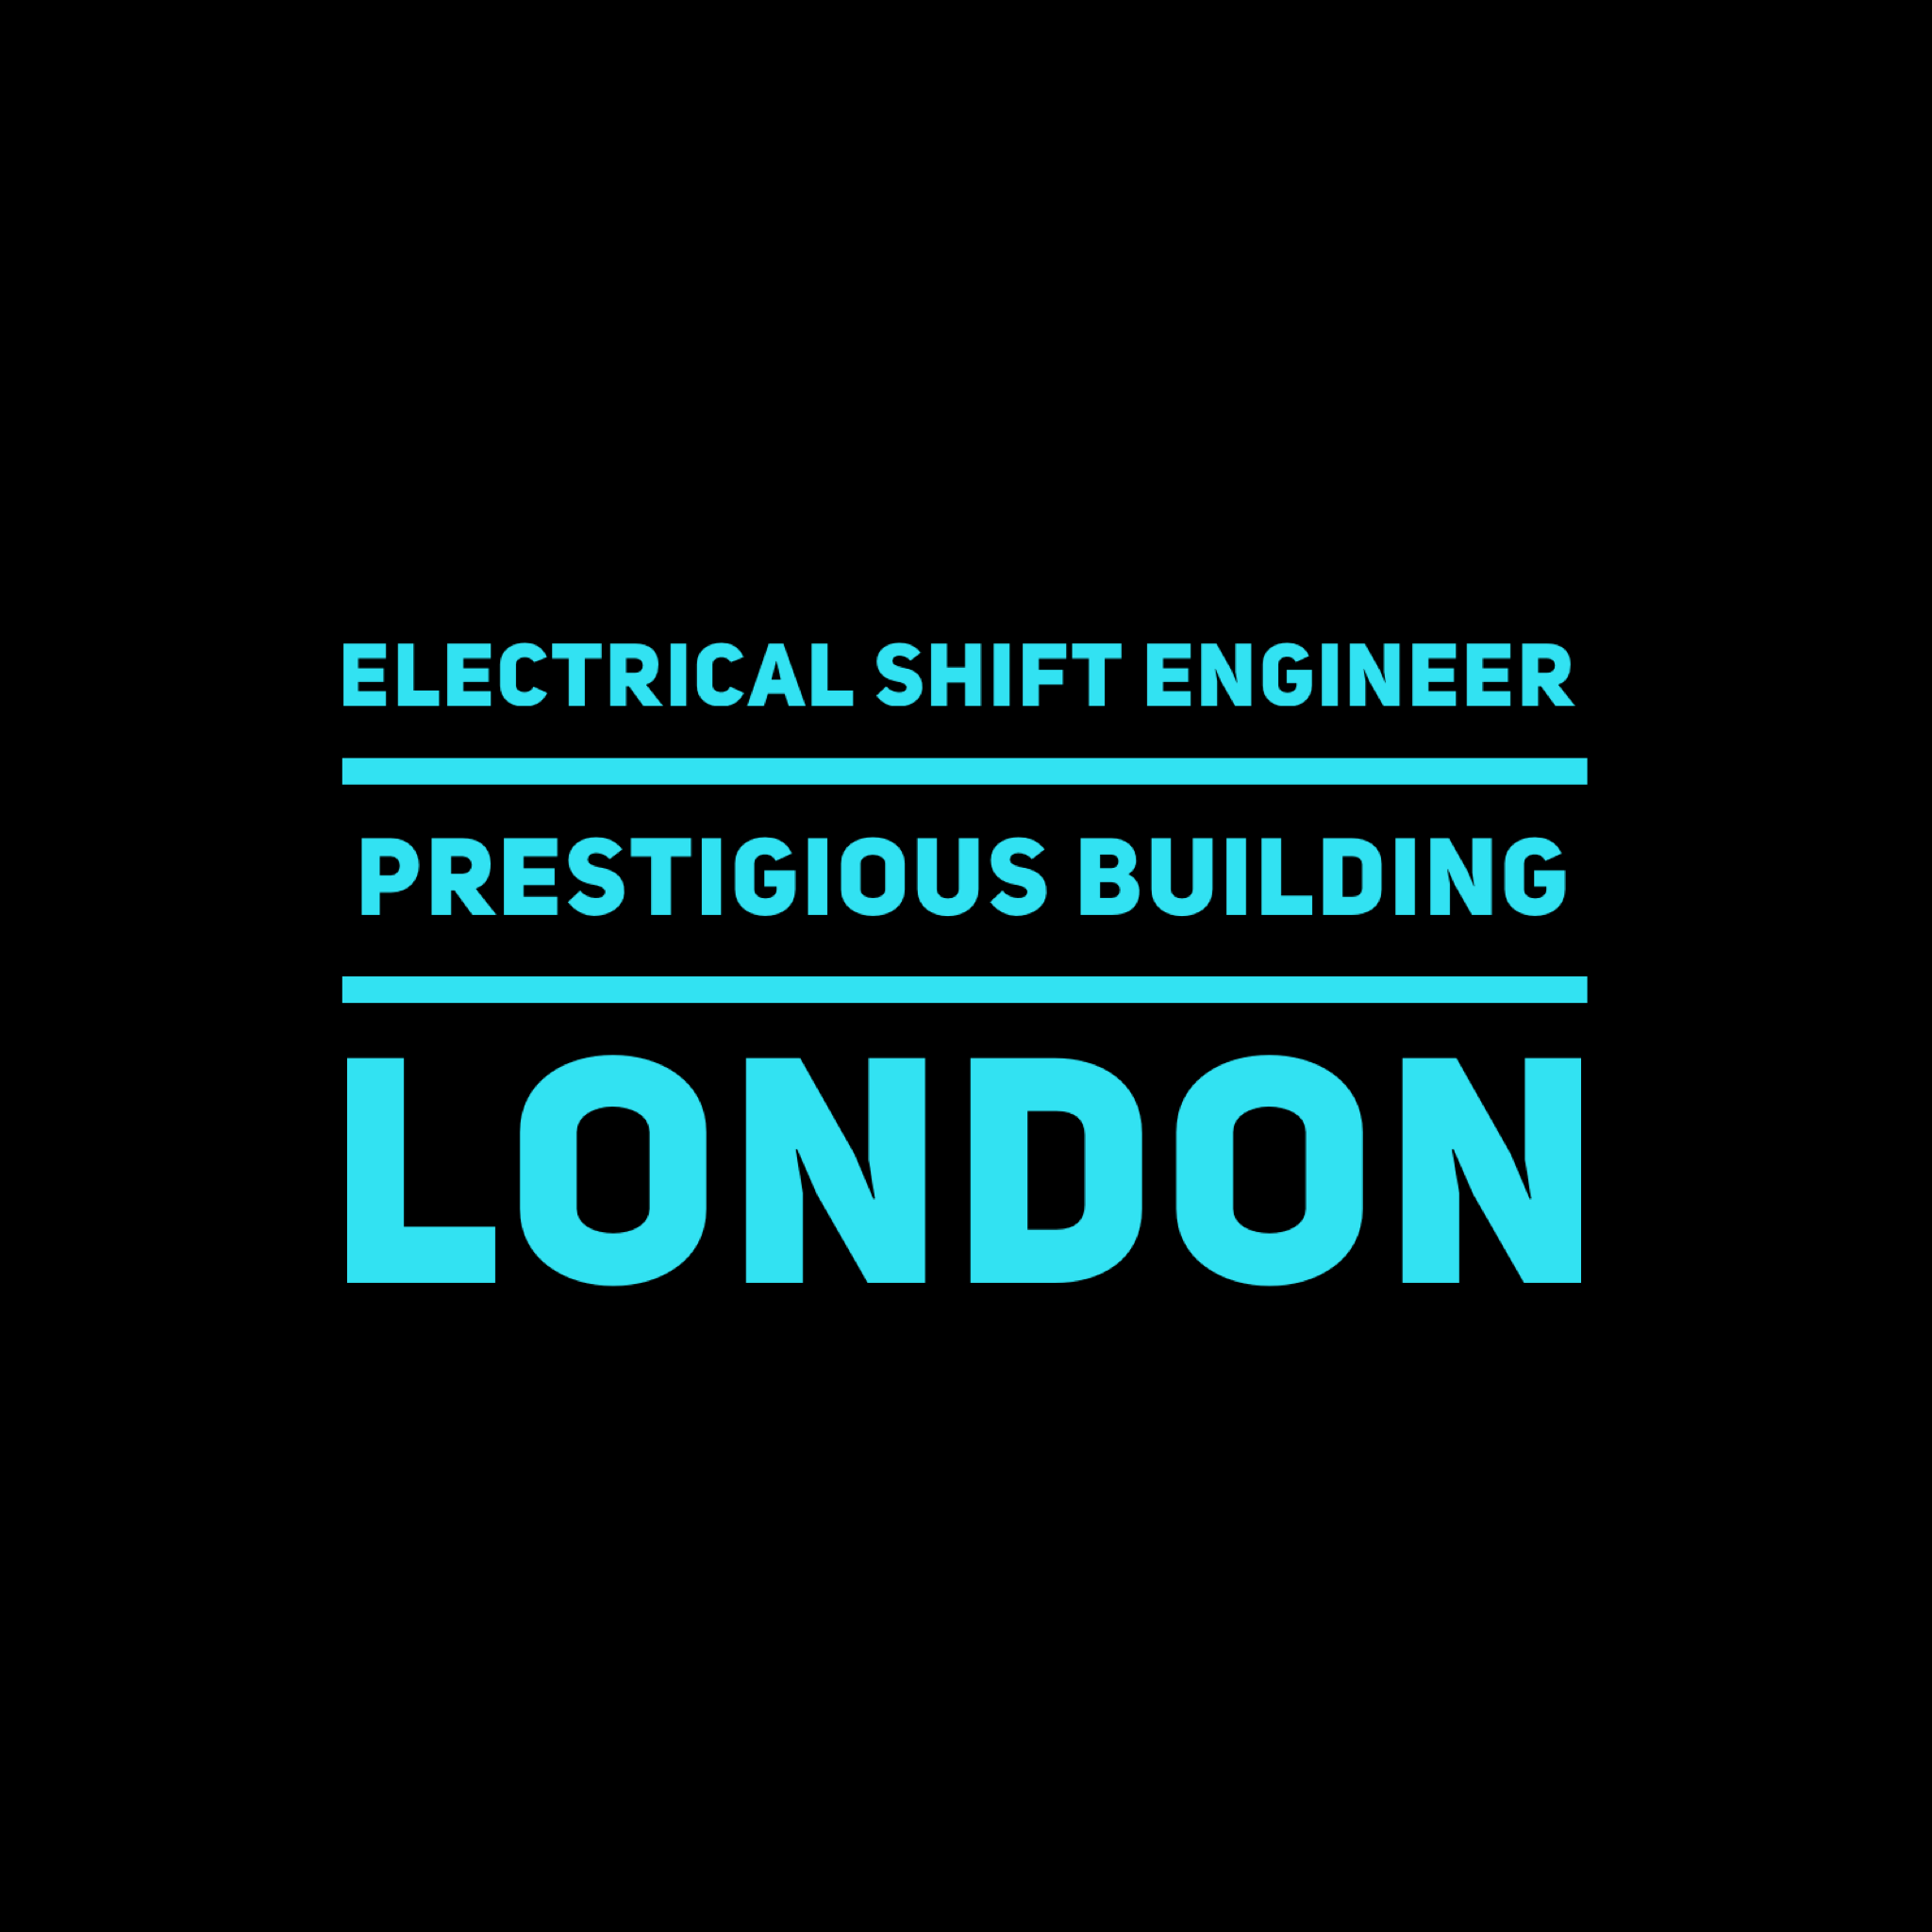 Electrical Shift Engineer